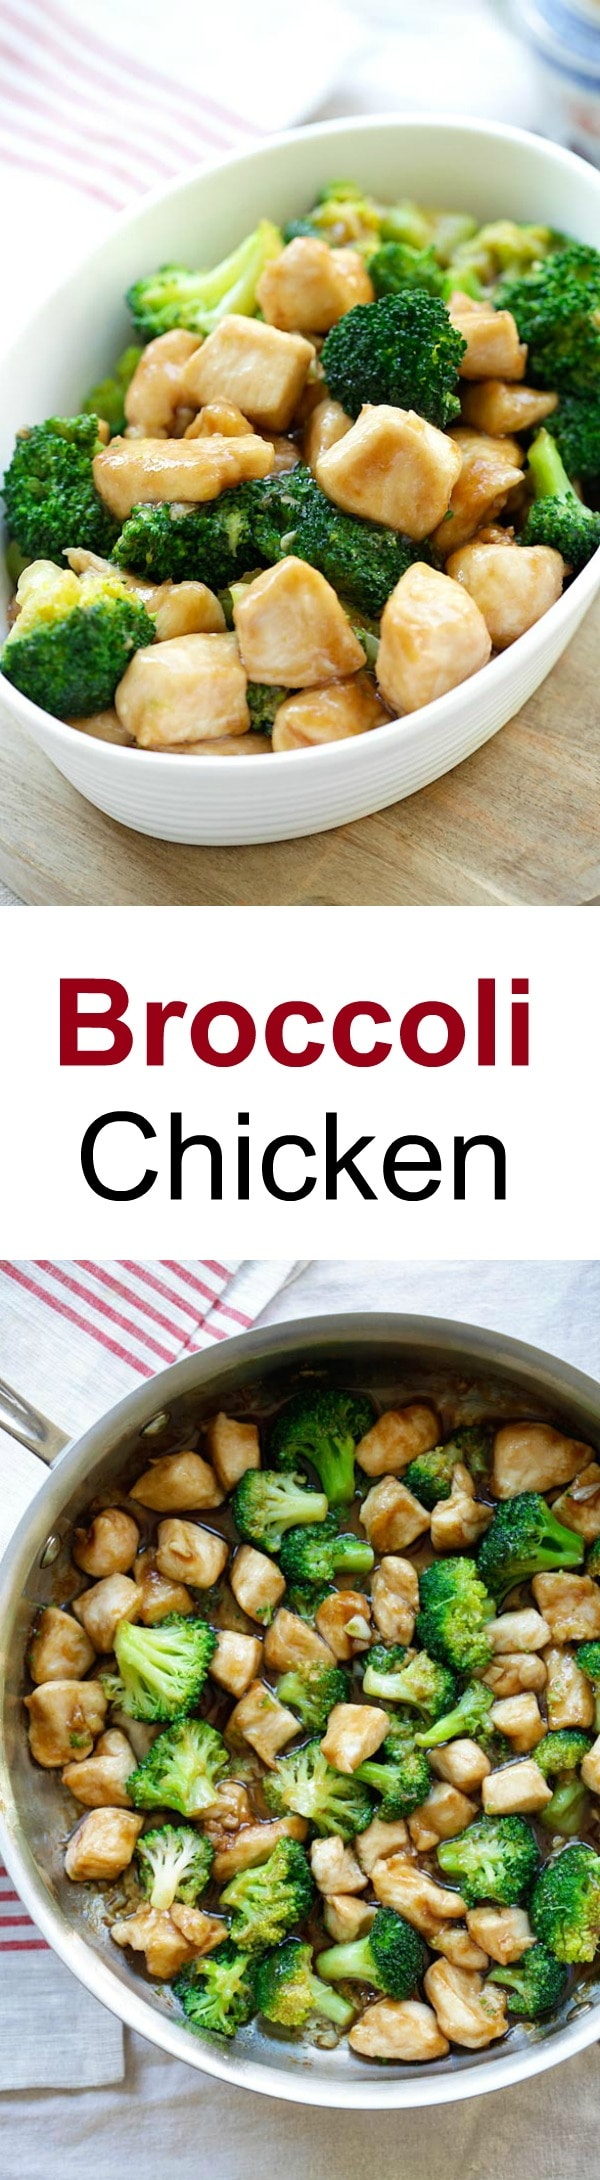 Chicken and Broccoli – Learn how to make healthy homemade chicken broccoli in brown sauce. Best and popular Chinese takeout recipe | rasamalaysia.com